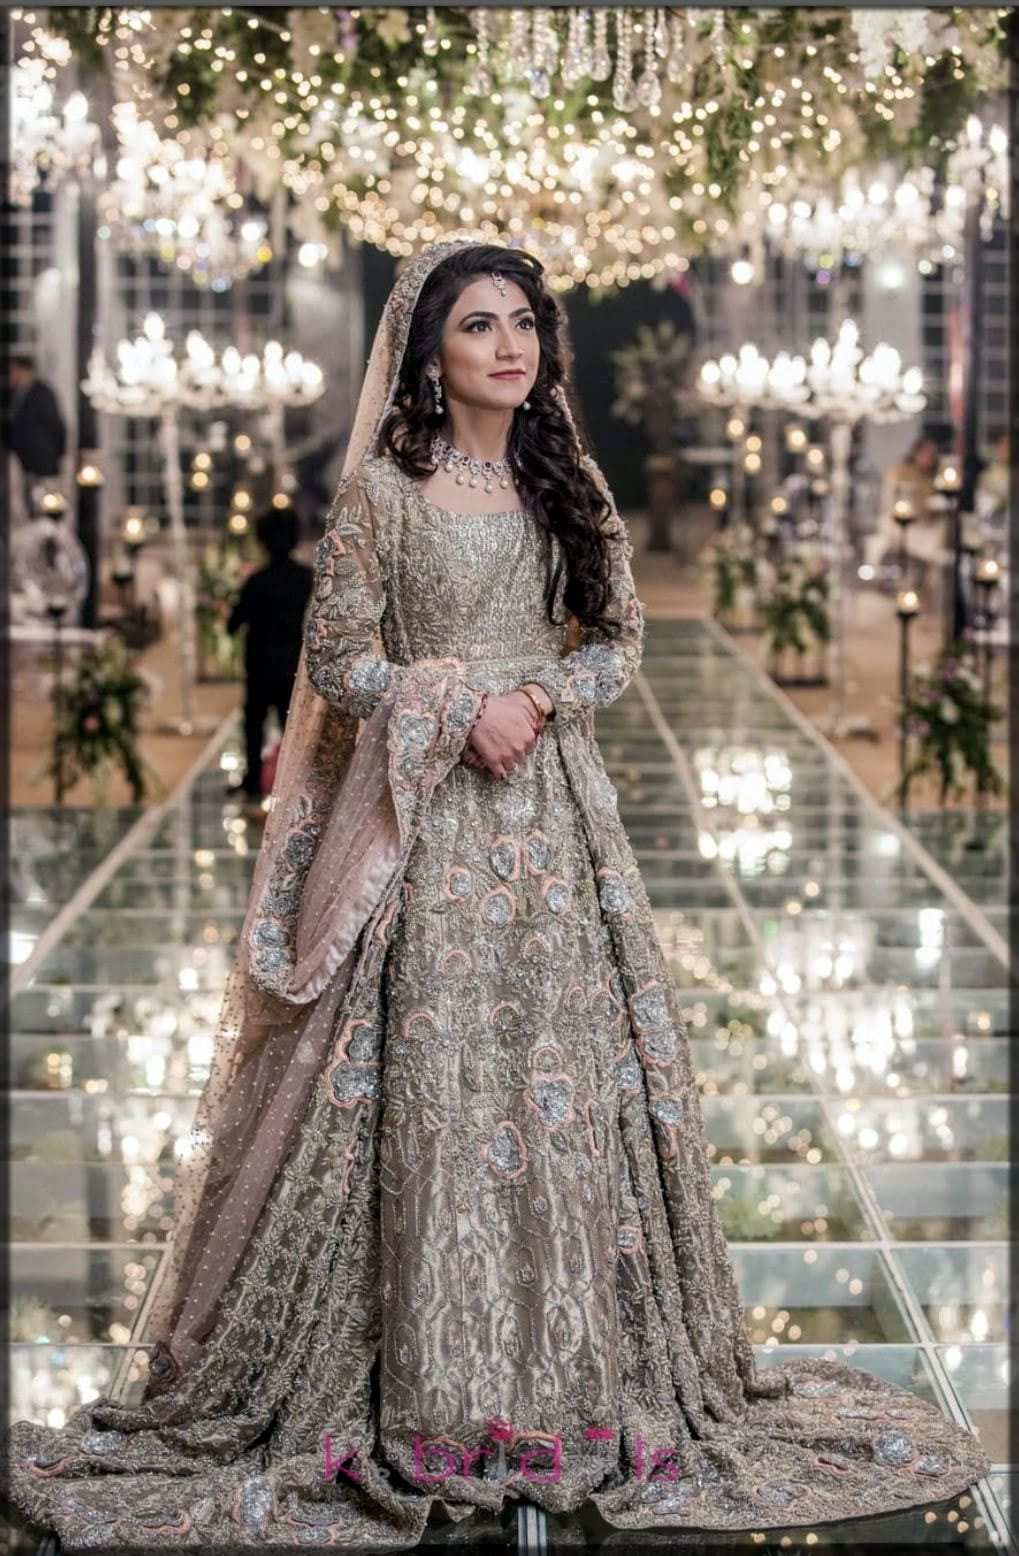 Barat day dress Pakistani wedding frocks